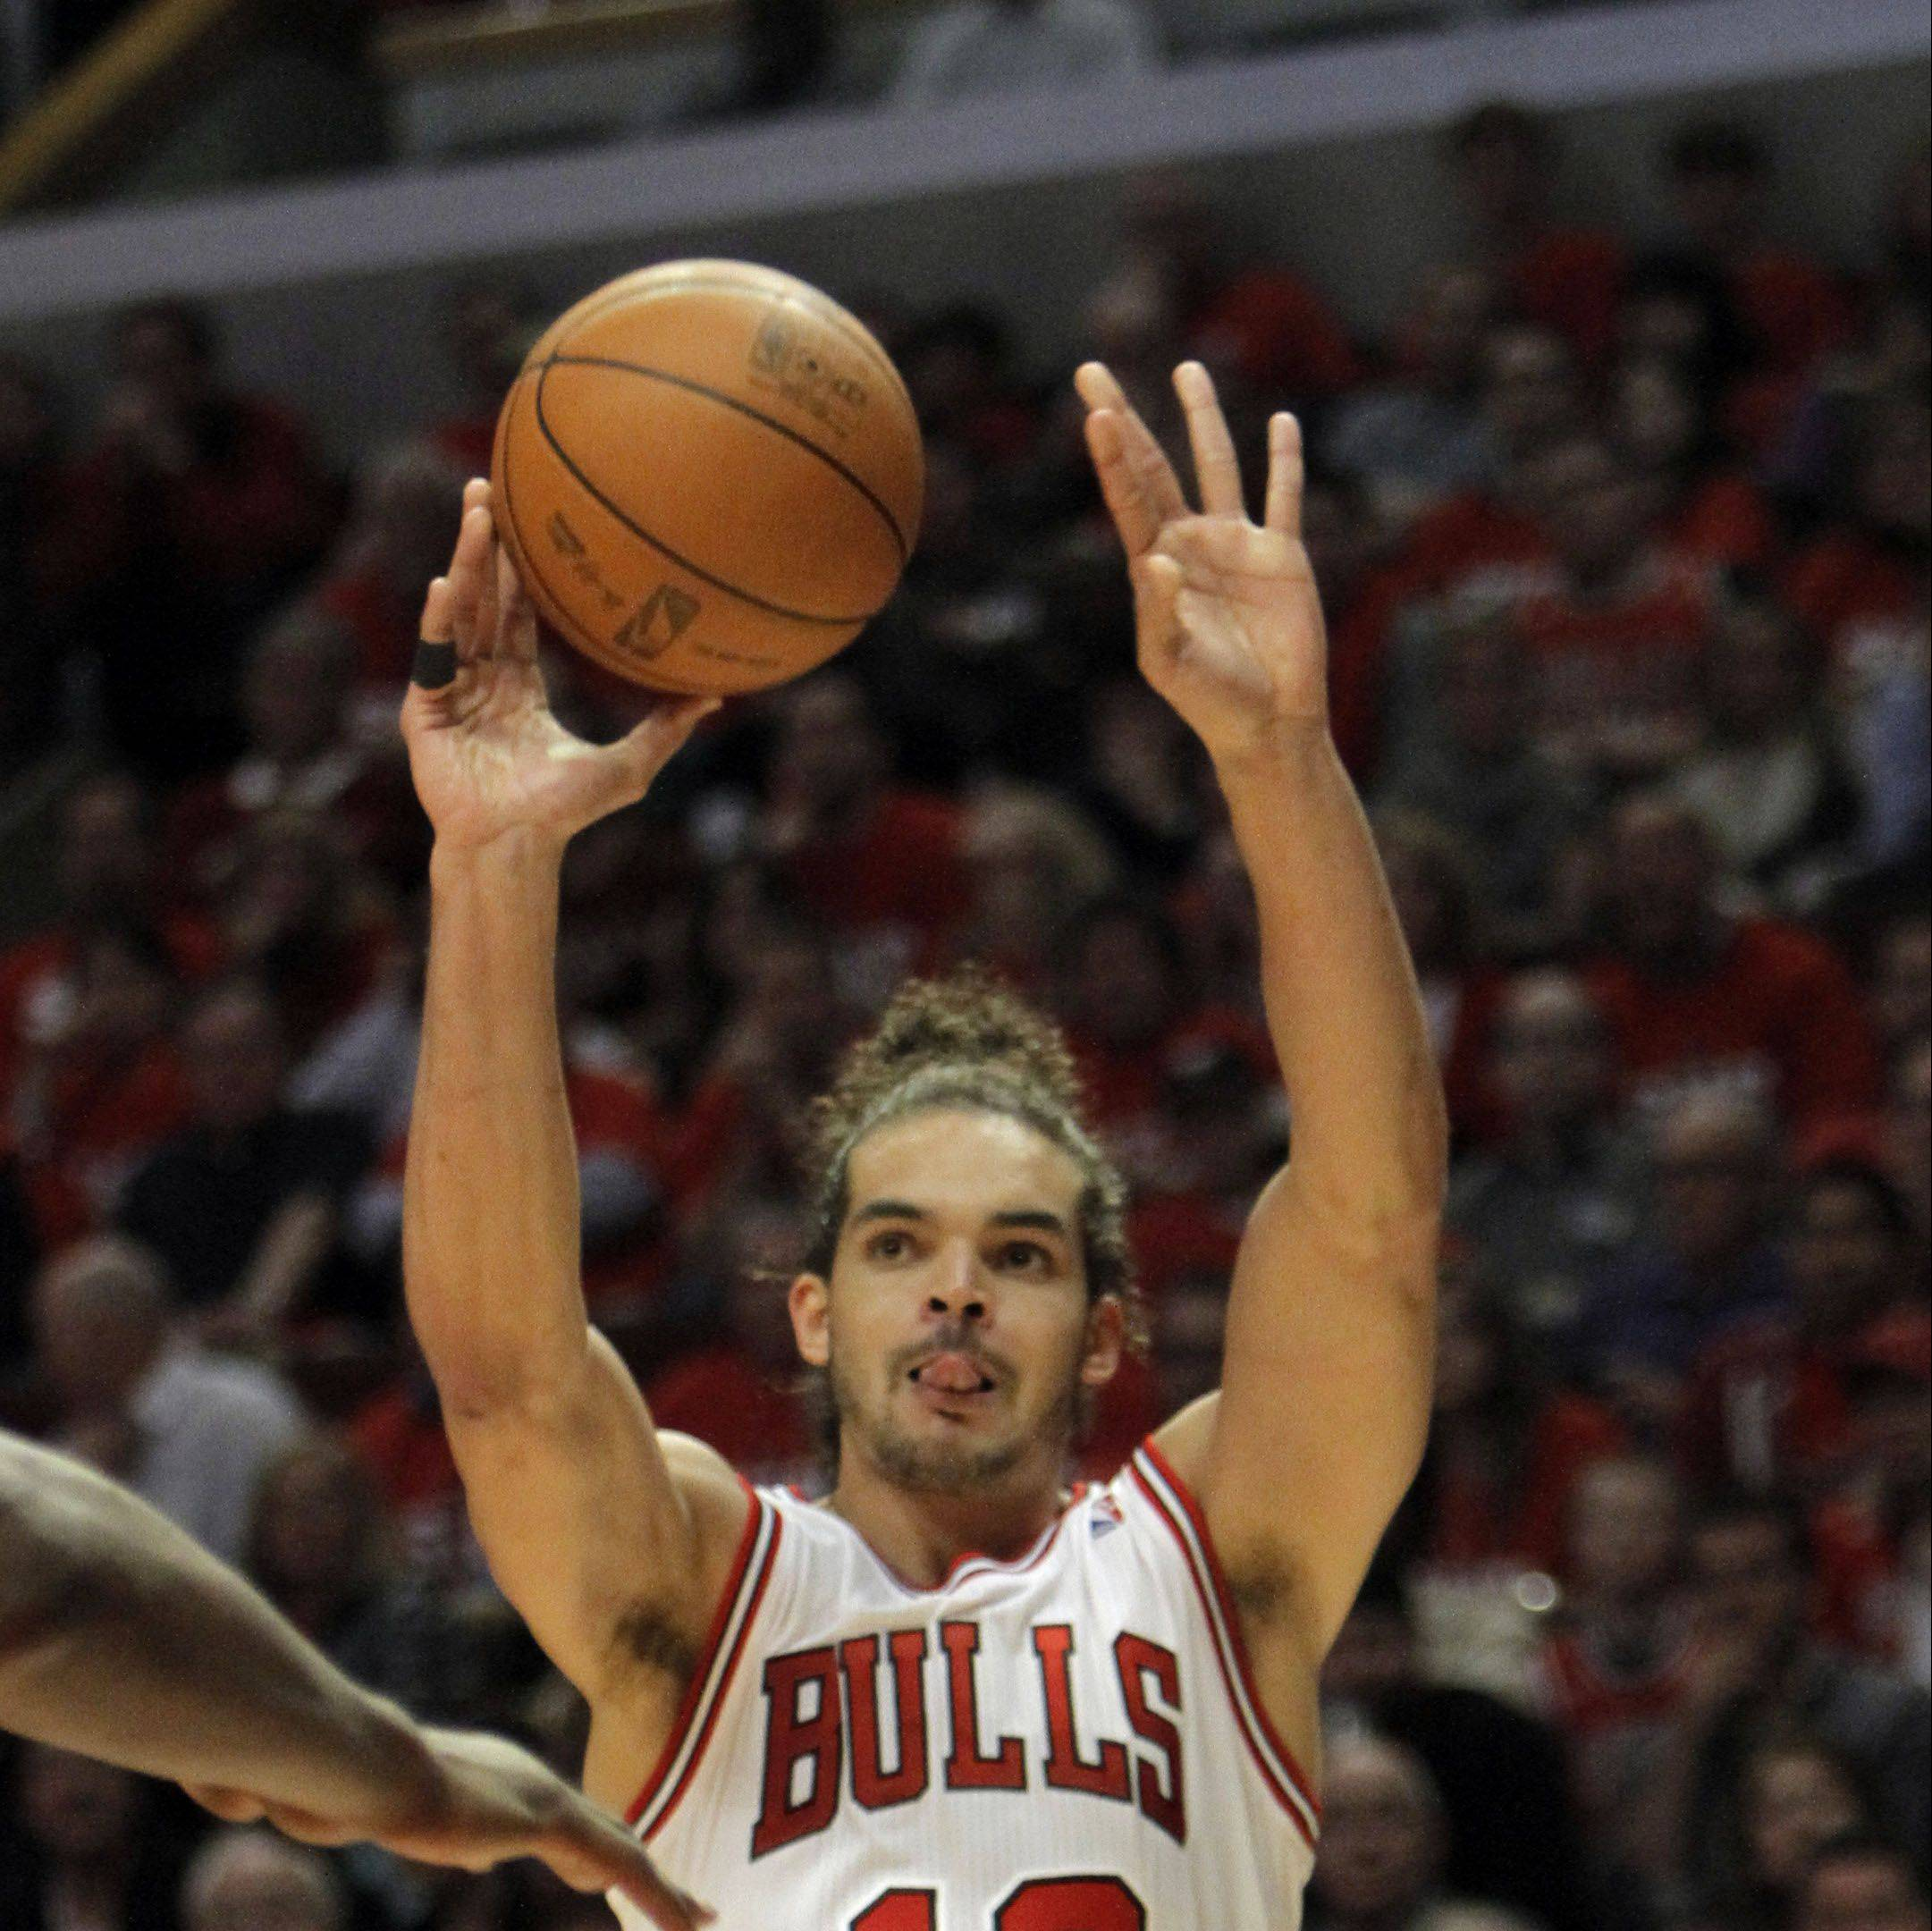 Bulls center Joakim Noah took advantage of working with former Lakers great Kareem Abdul-Jabbar in the offseason.